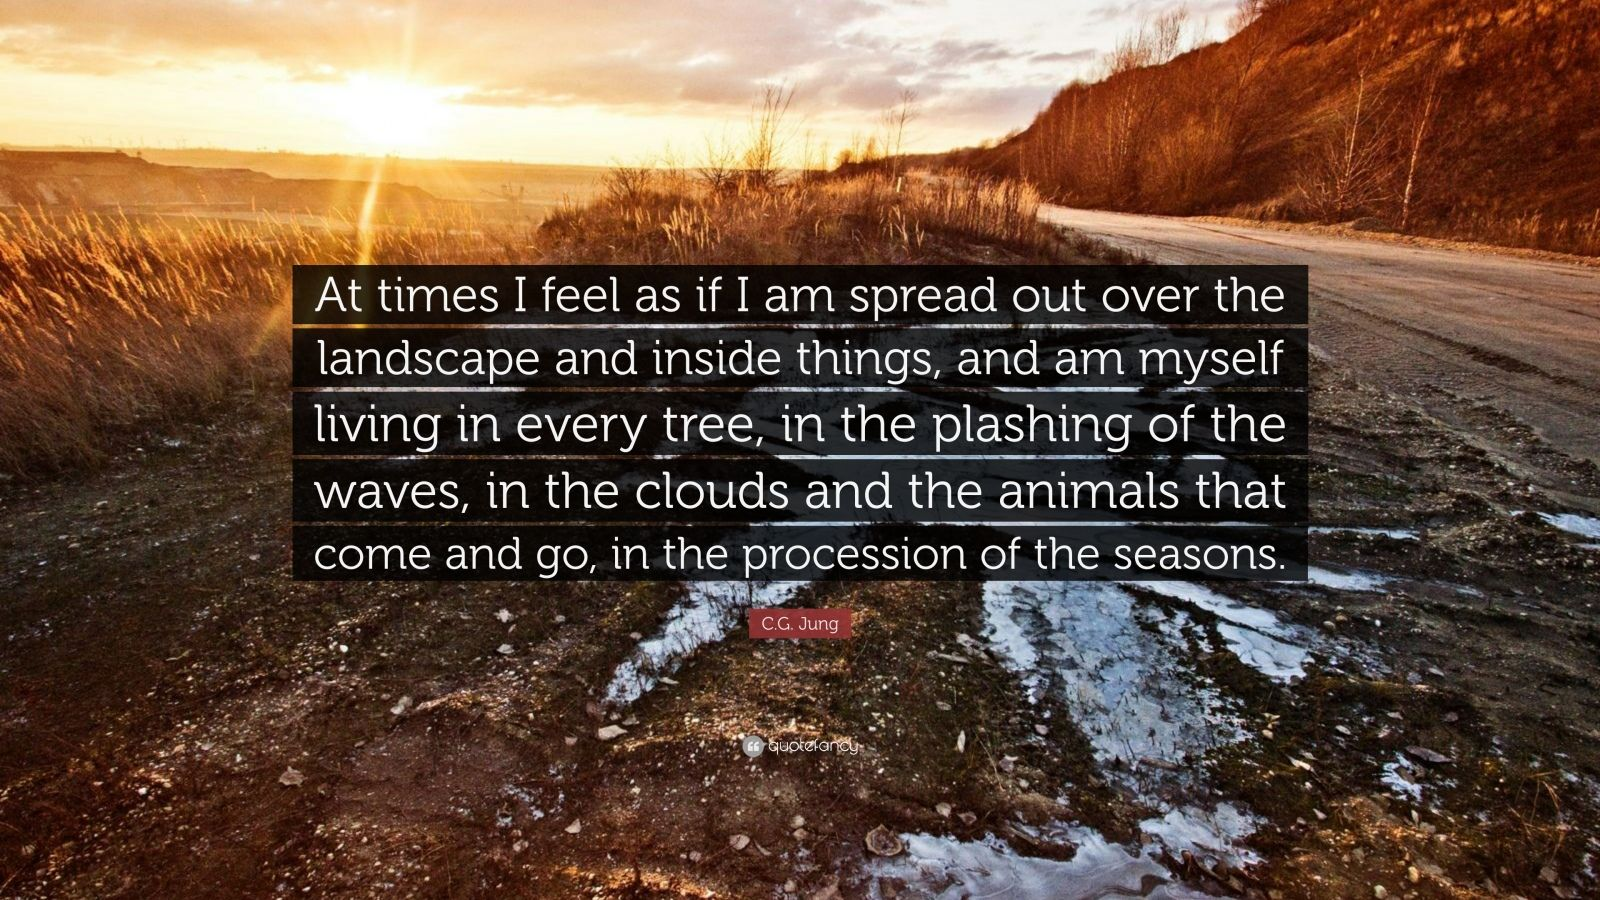 "C.G. Jung Quote: ""At times I feel as if I am spread out over the landscape and inside things, and am myself living in every tree, in the plashing of the waves, in the clouds and the animals that come and go, in the procession of the seasons."""